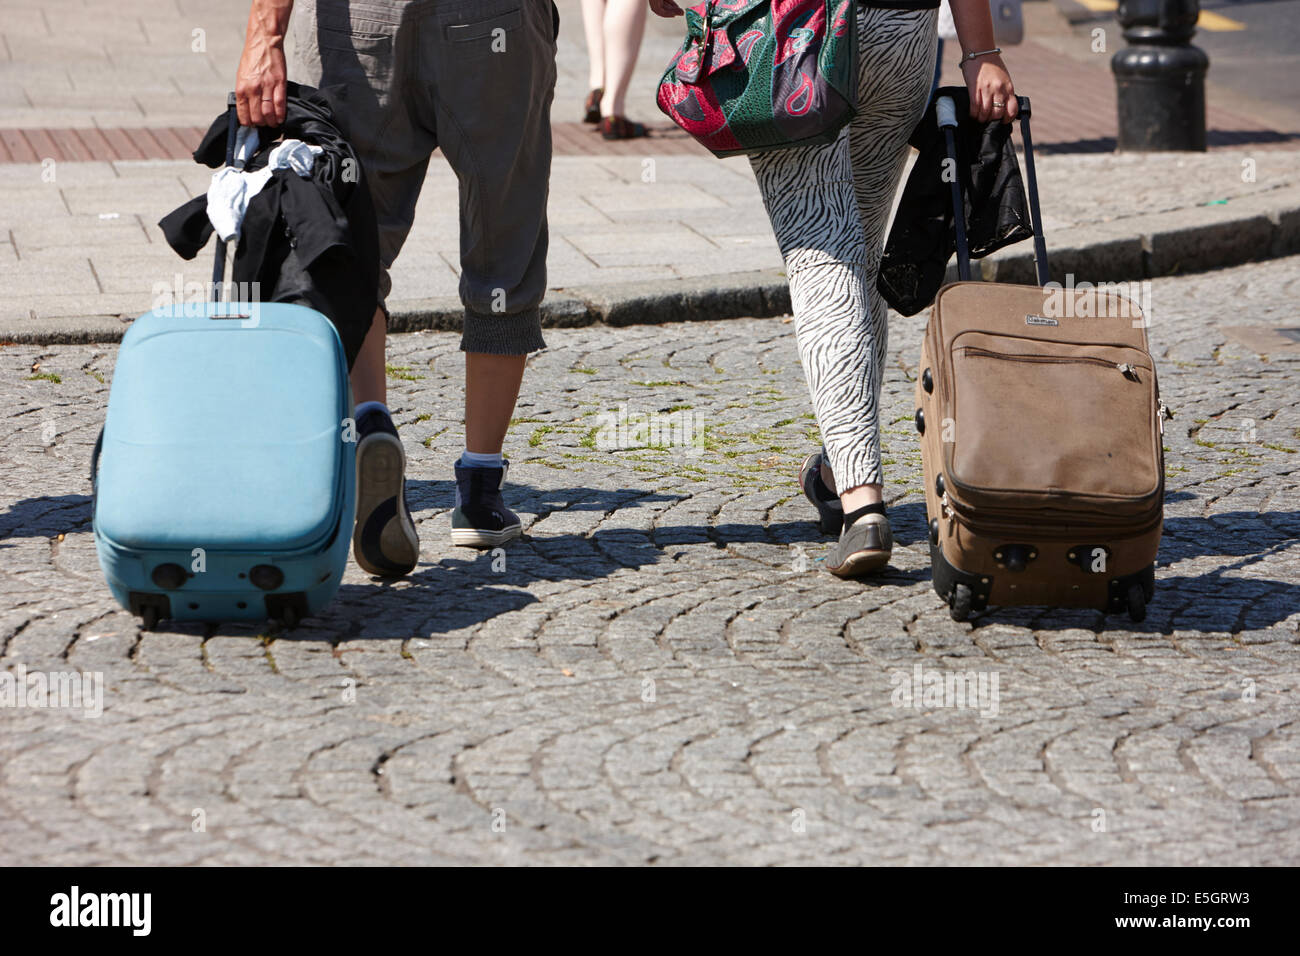 two women with wheeled suitcases walking across the road in Belfast city centre - Stock Image